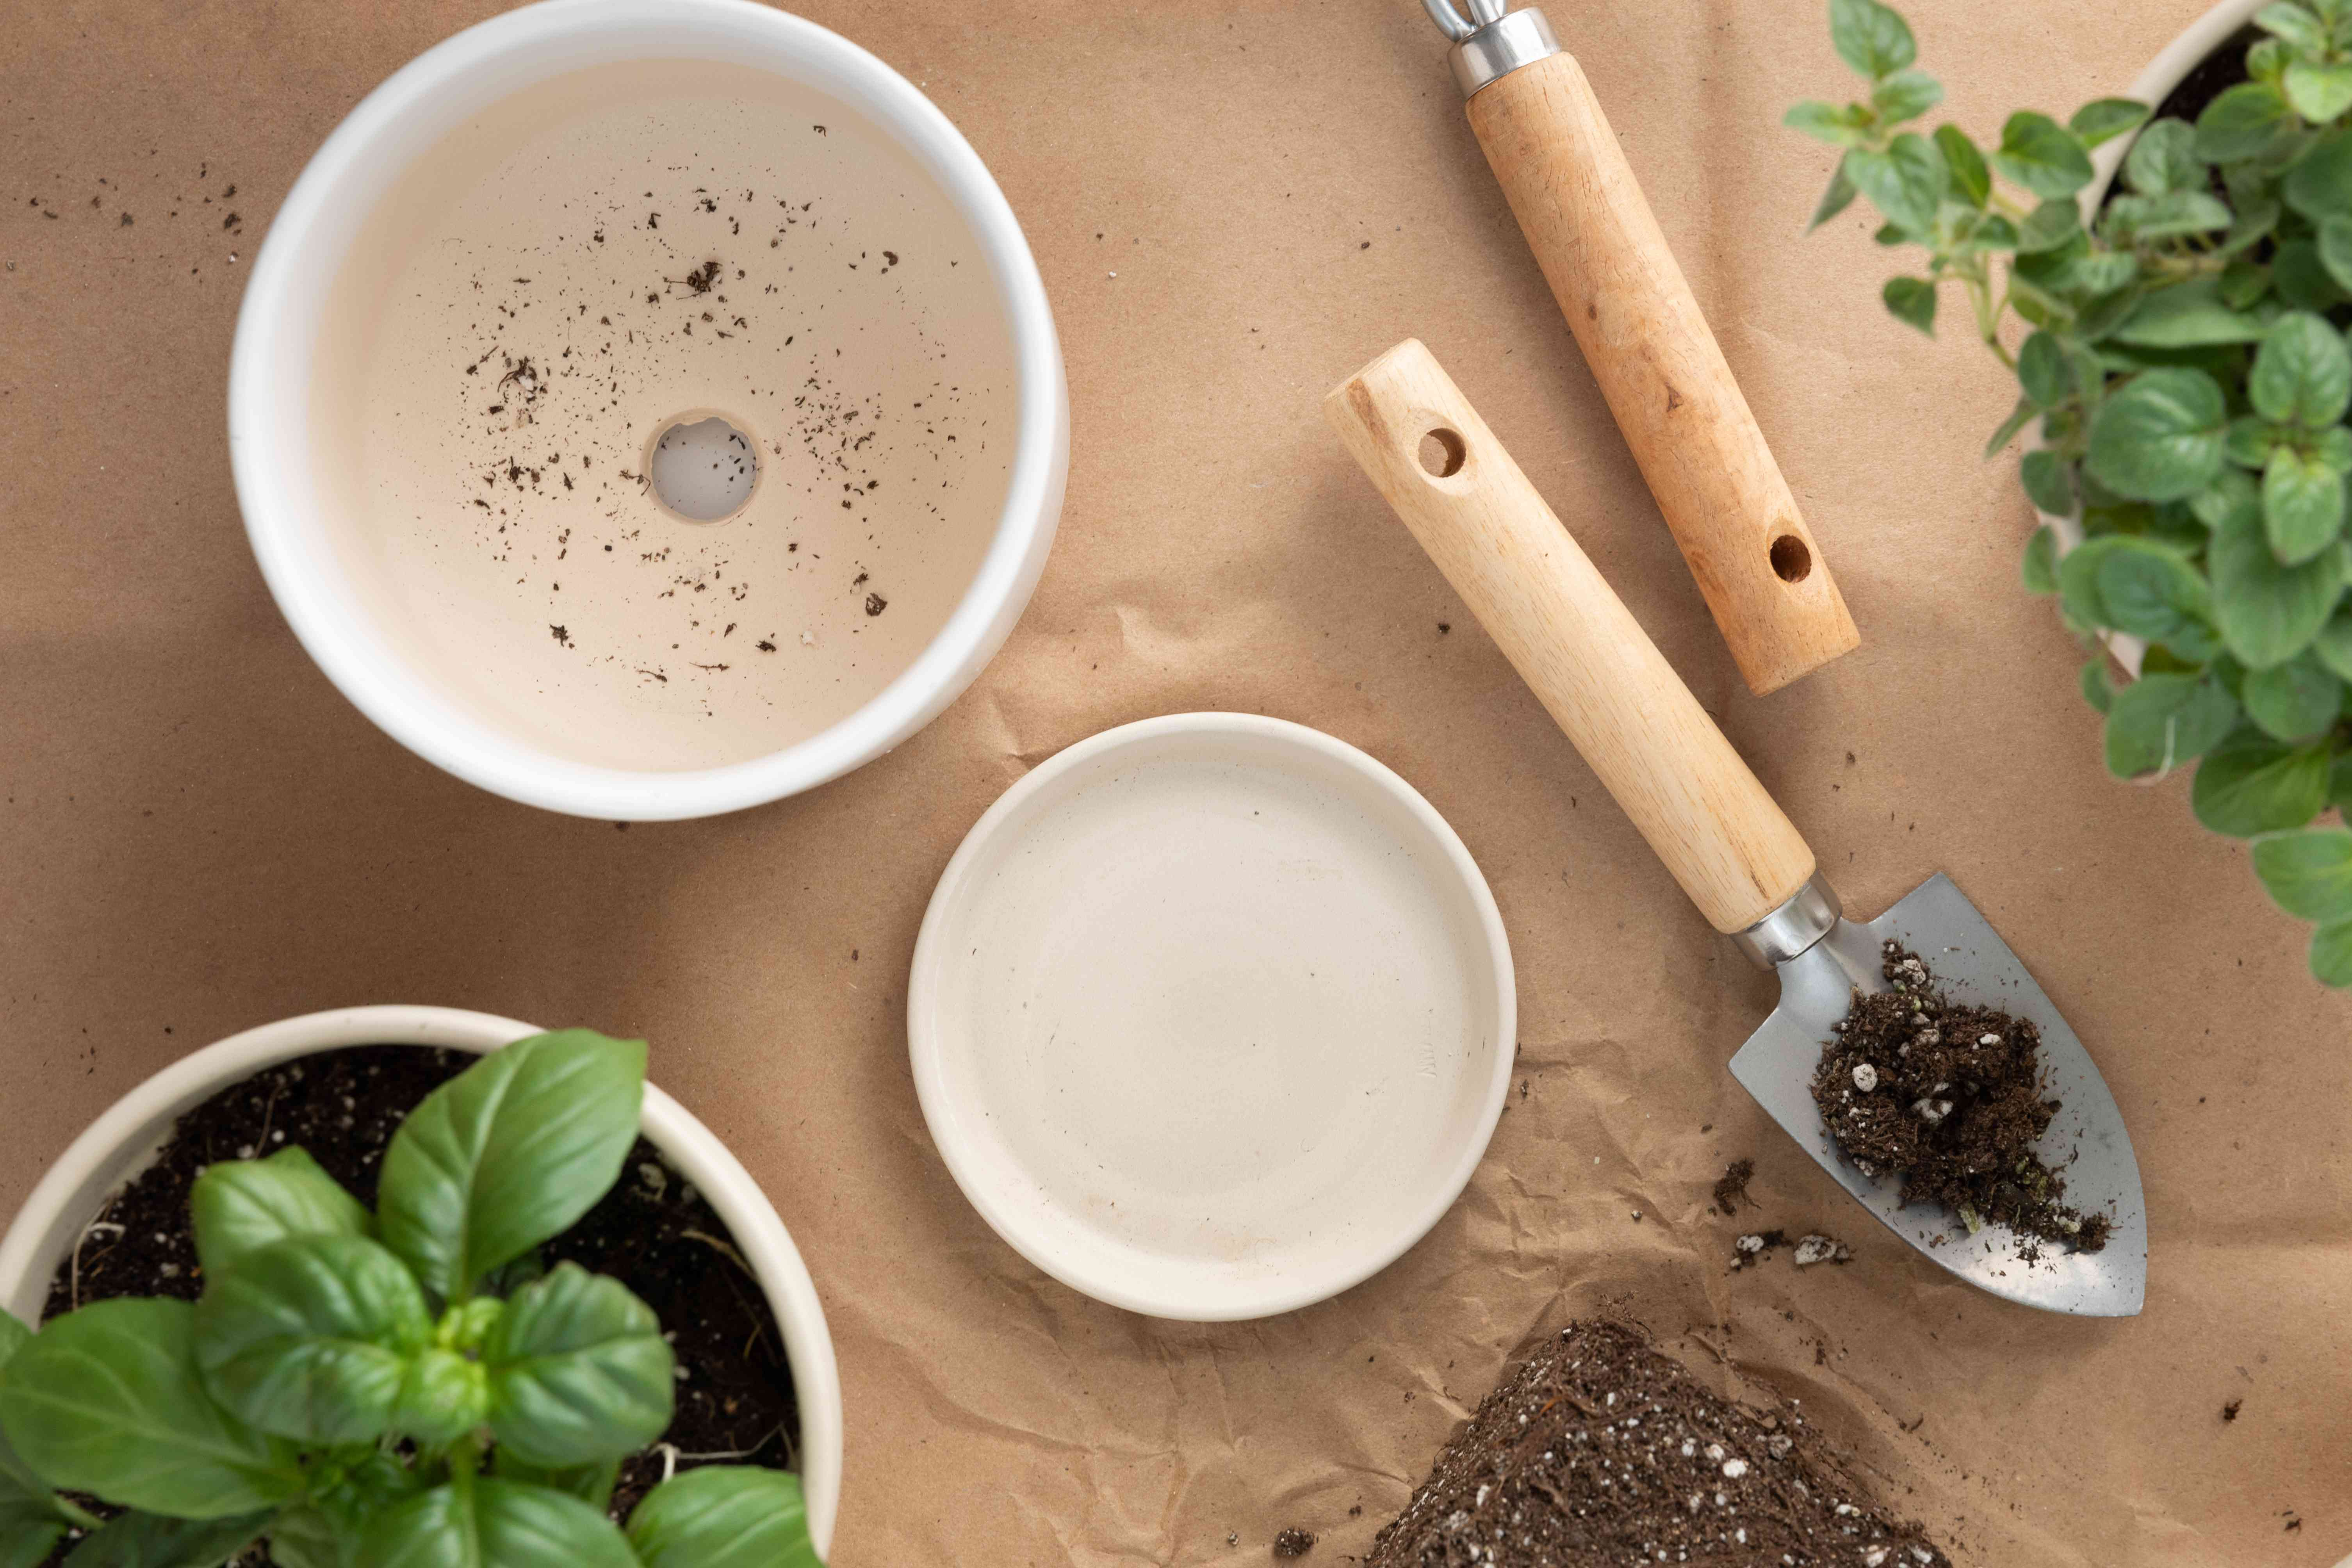 items for potting herbs